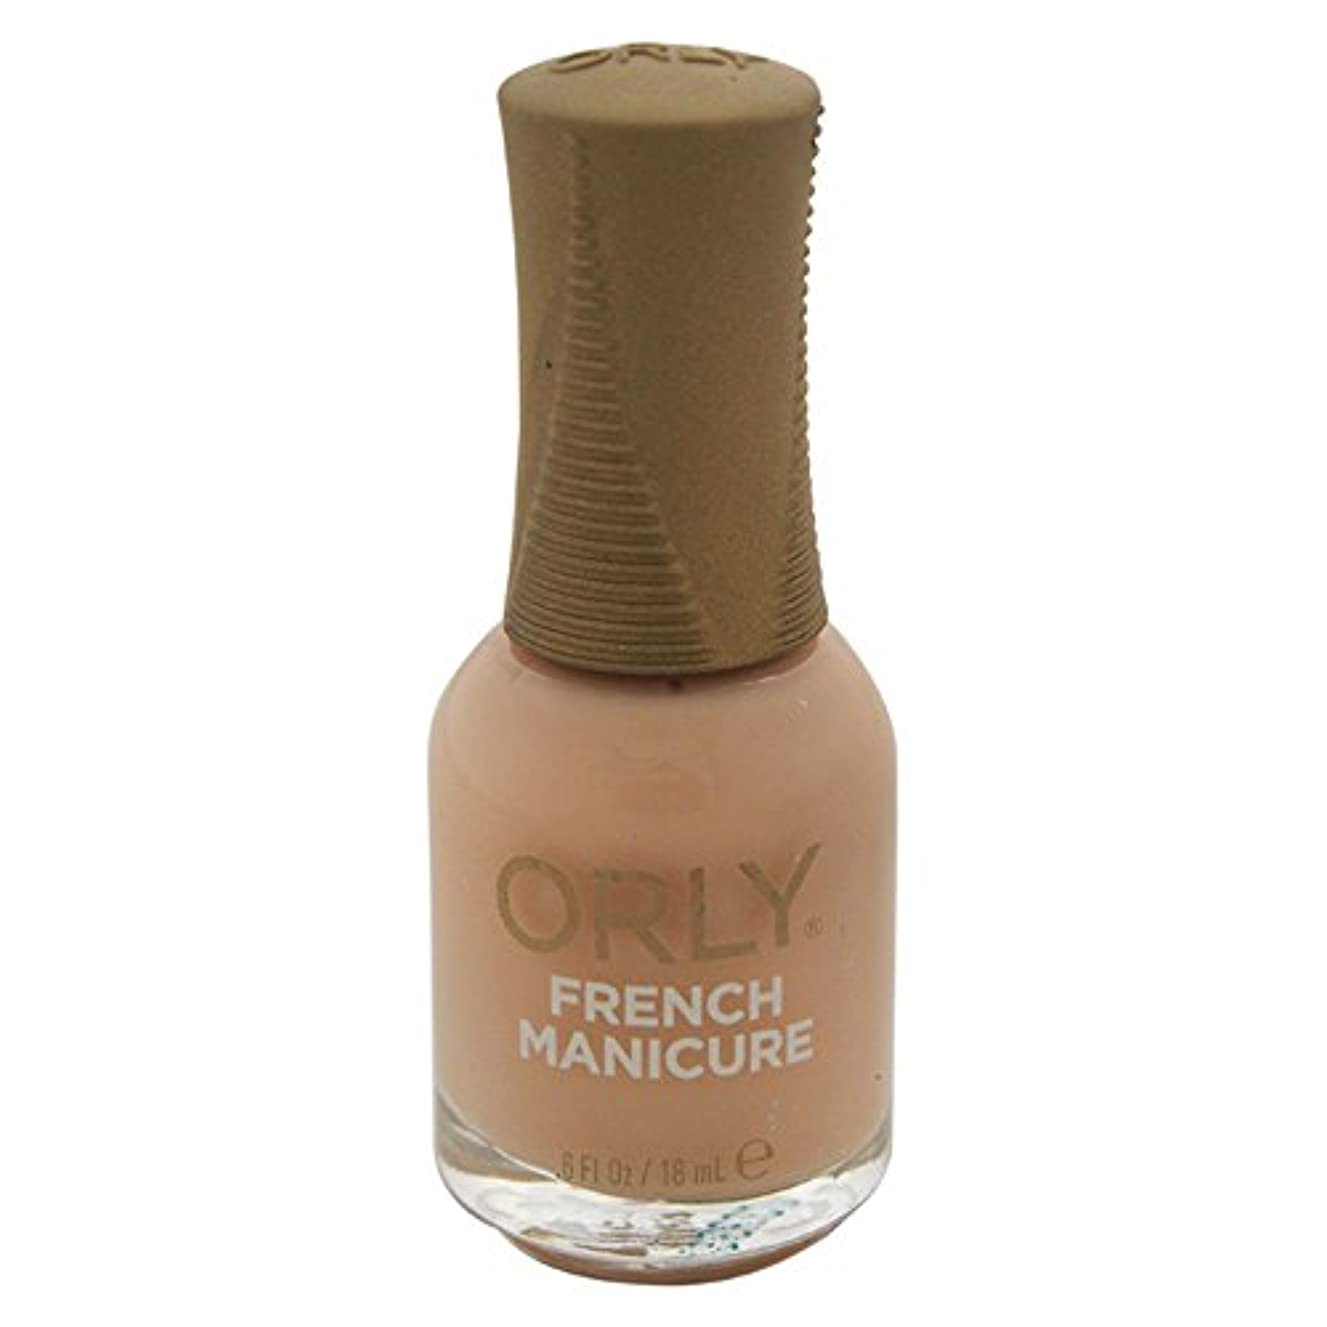 Orly Nail Lacquer - Sheer Nude - 0.6oz / 18ml